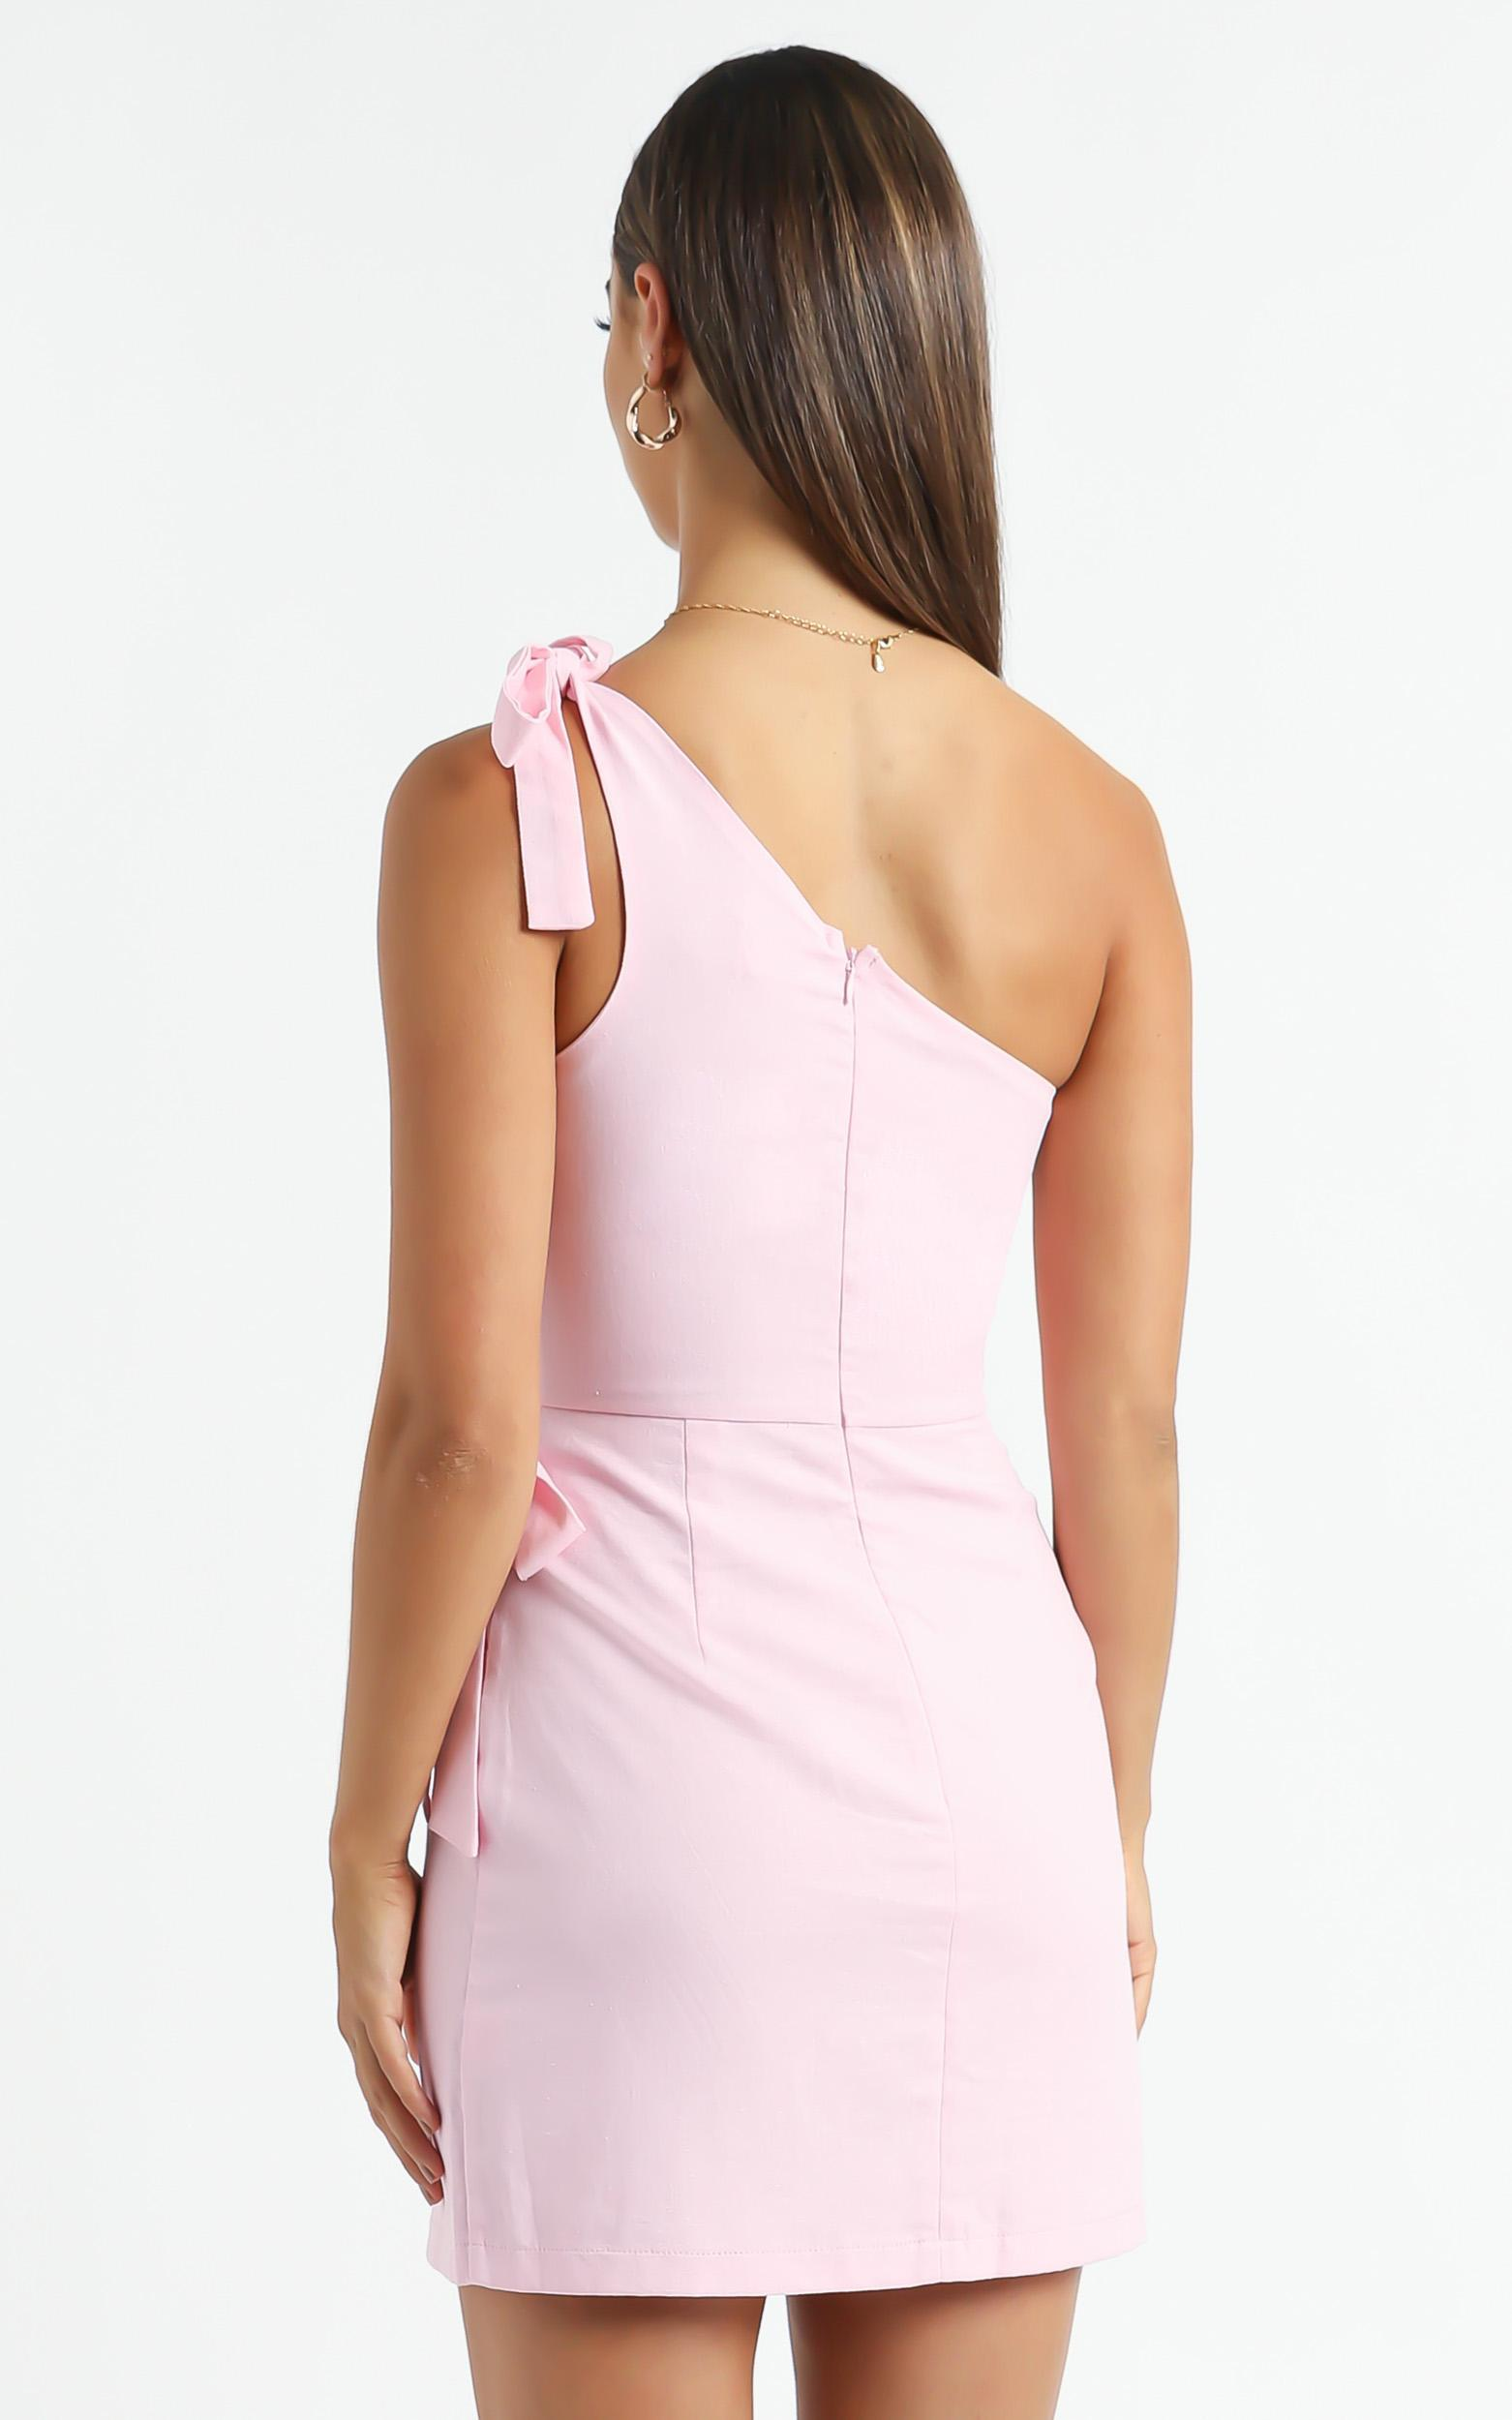 Keeping it together dress in Pink Linen Look - 6 (XS), PNK1, hi-res image number null